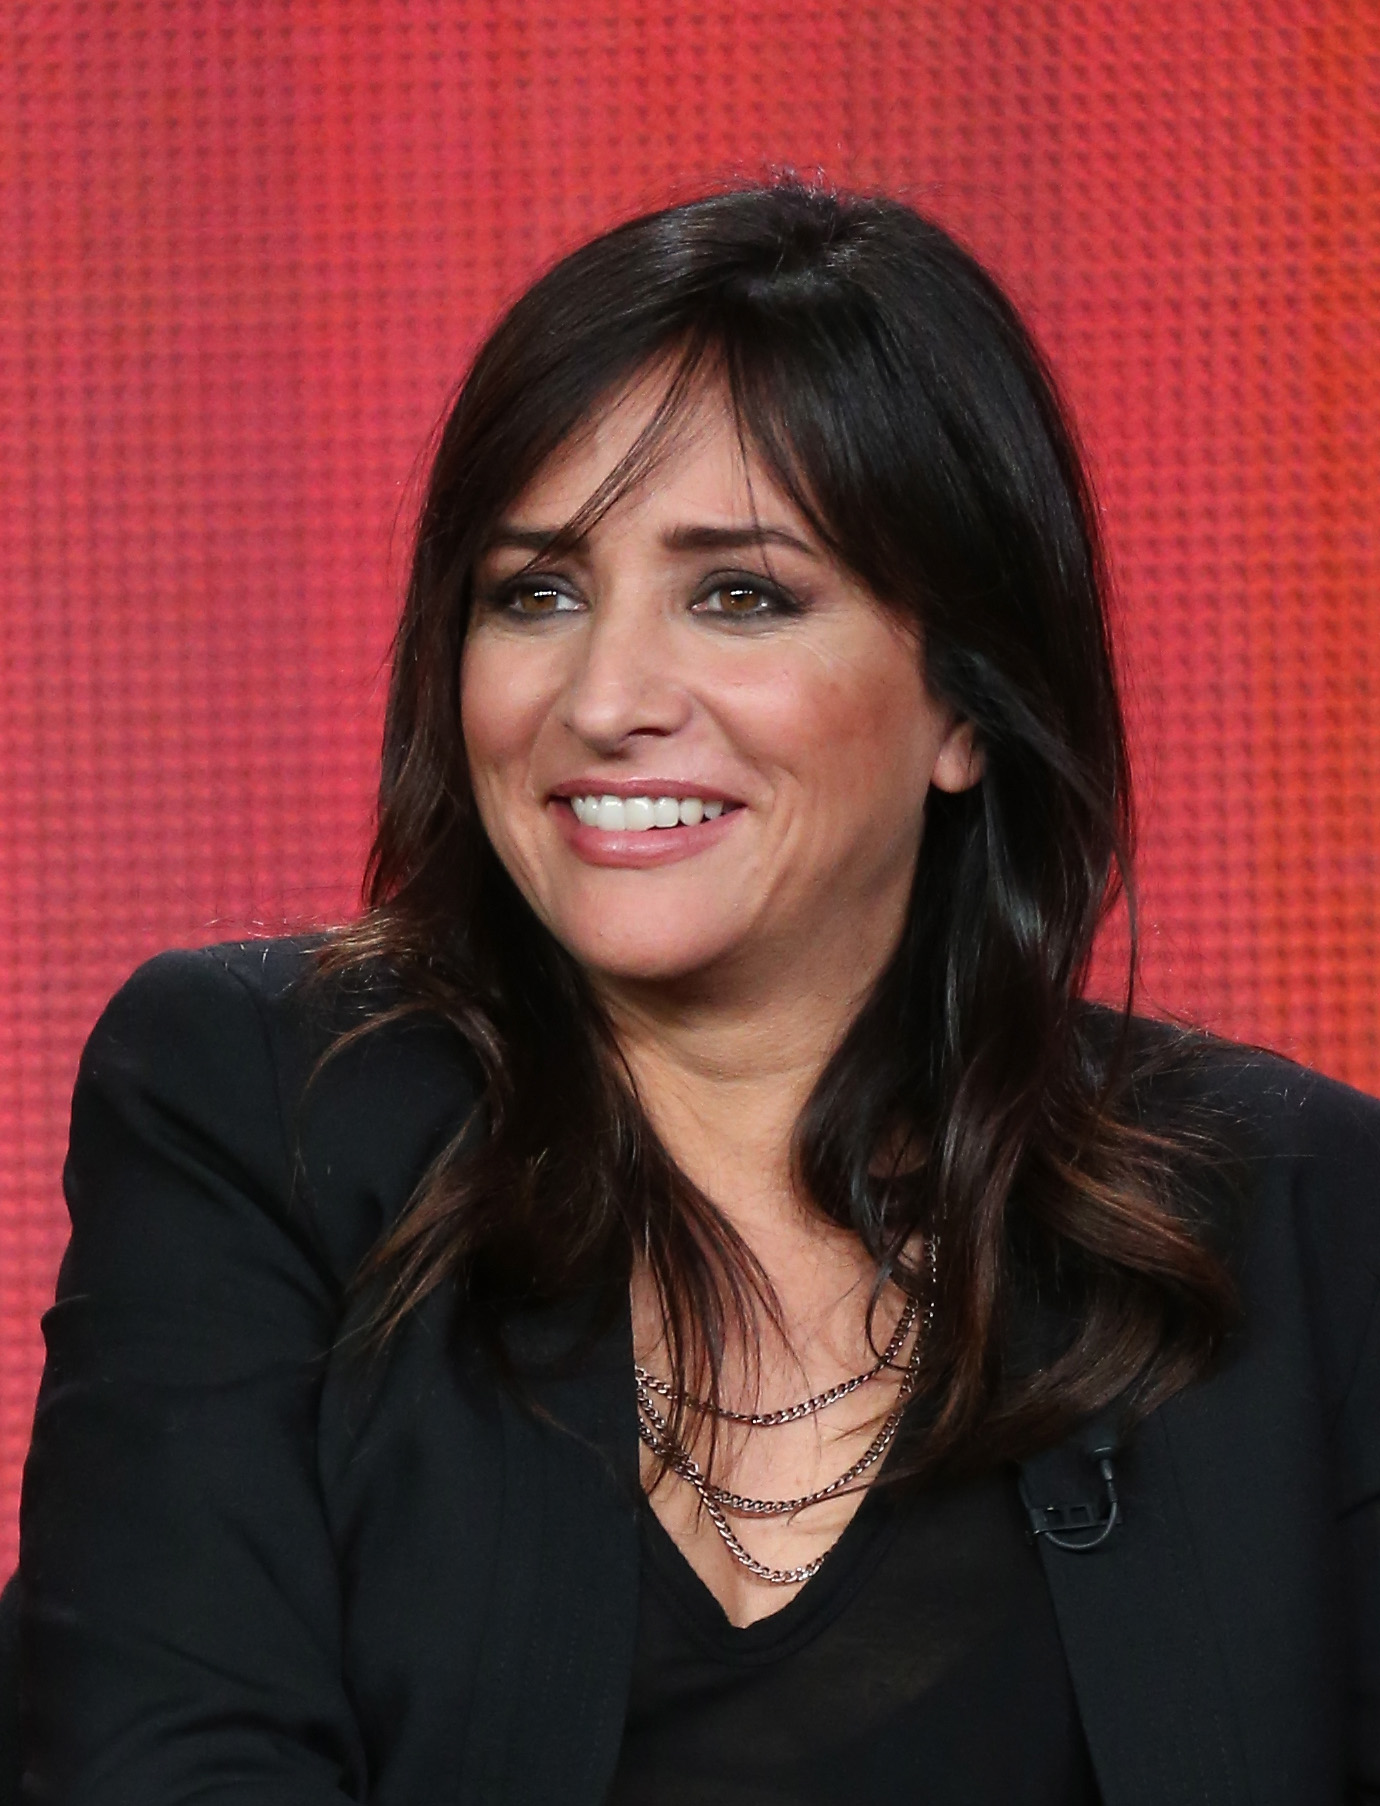 Actress Pamela Adlon of  Californication  speaks onstage during the Showtime portion of the 2013 Winter TCA Tour at Langham Hotel on January 12, 2013 in Pasadena, California.